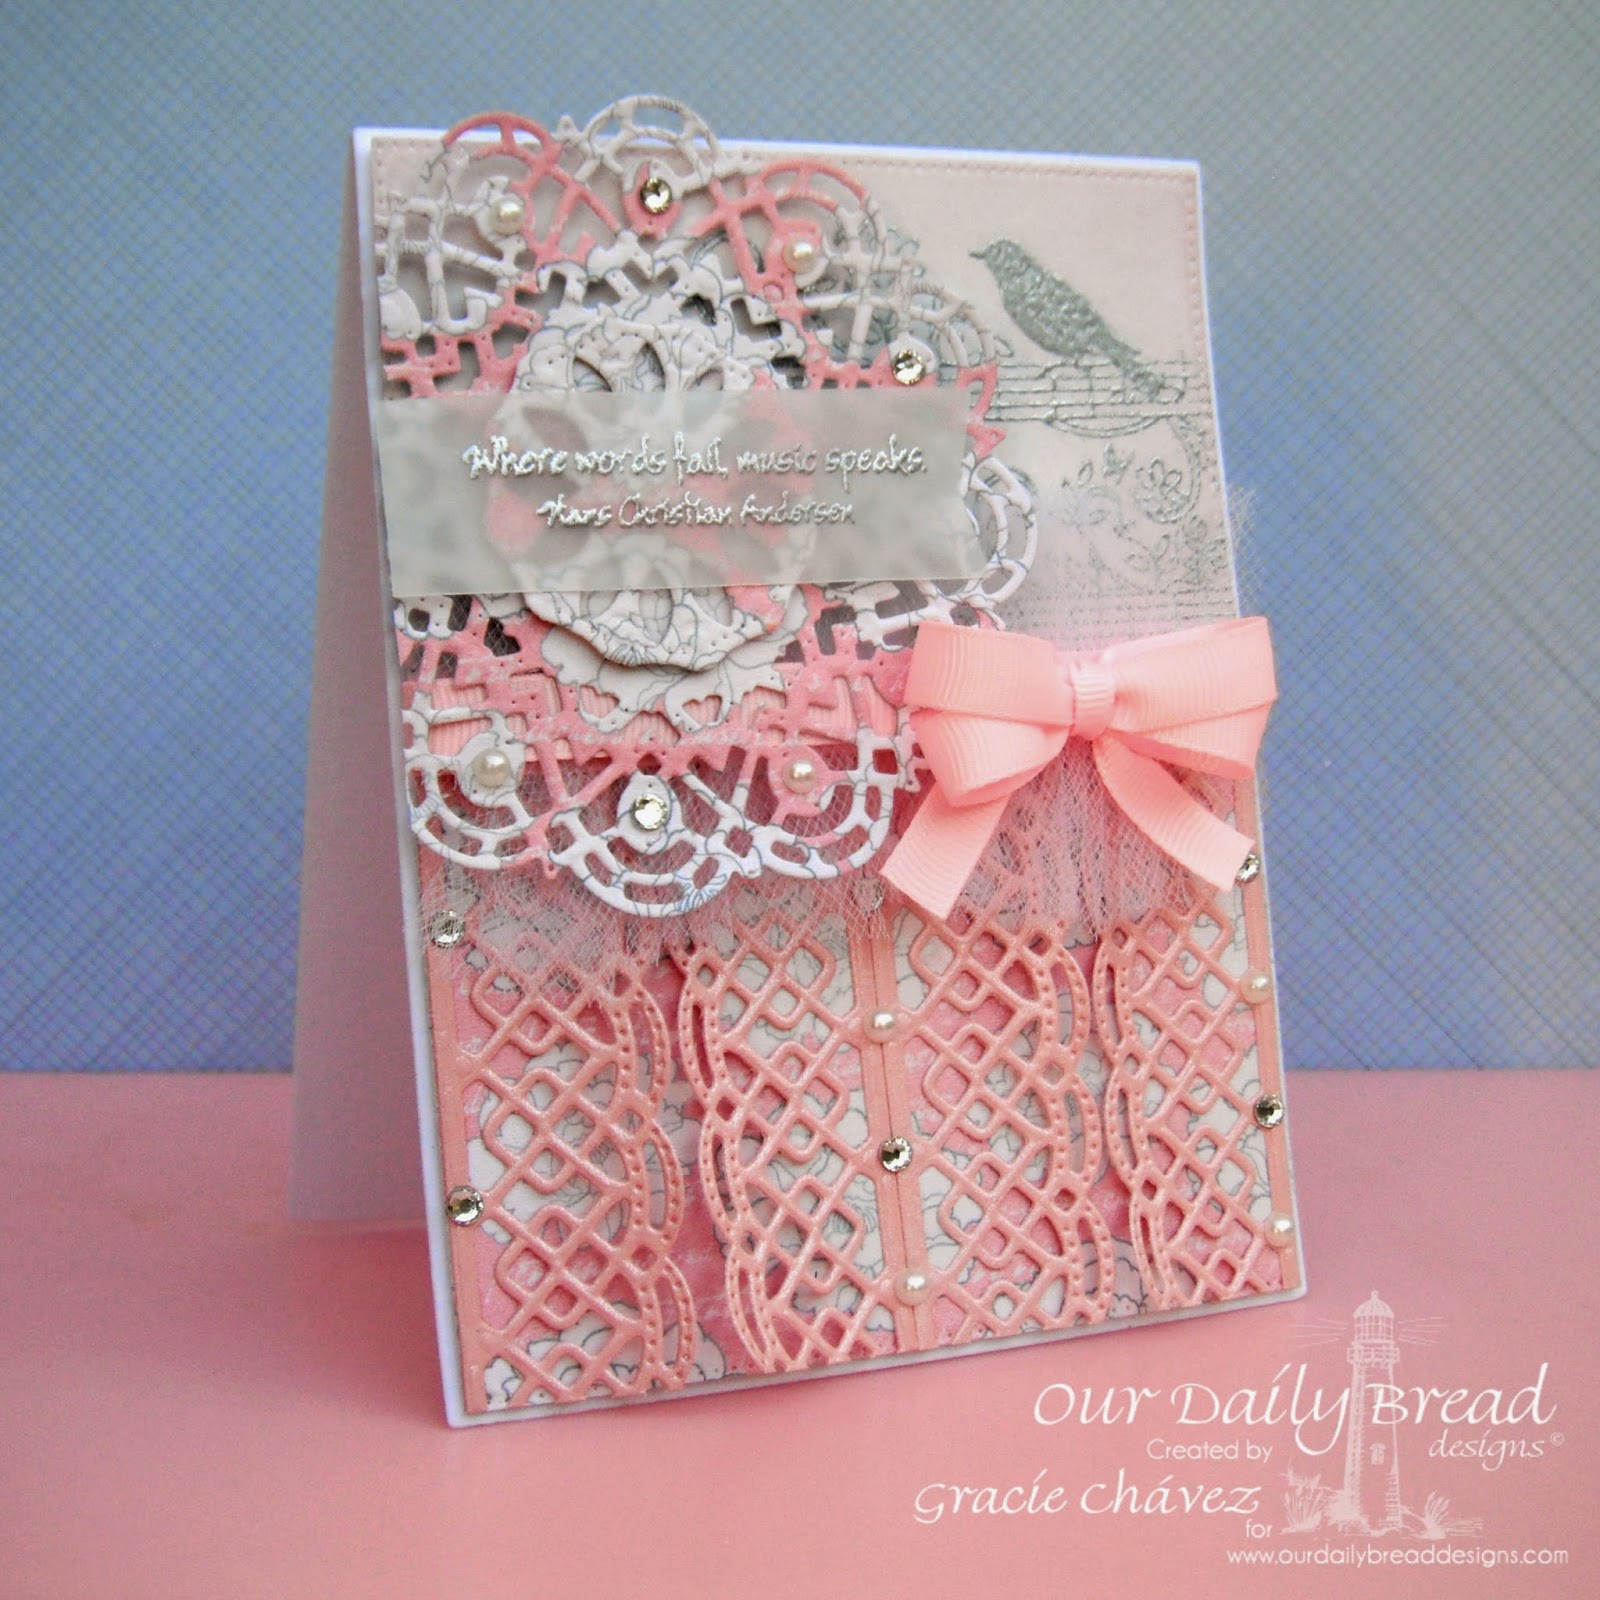 Our Daily Bread Designs, Music Speaks Stamp Set, Beautiful Borders Dies, Doily Dies, Flourished Star Pattern Die, Designed by Gracie Chavez